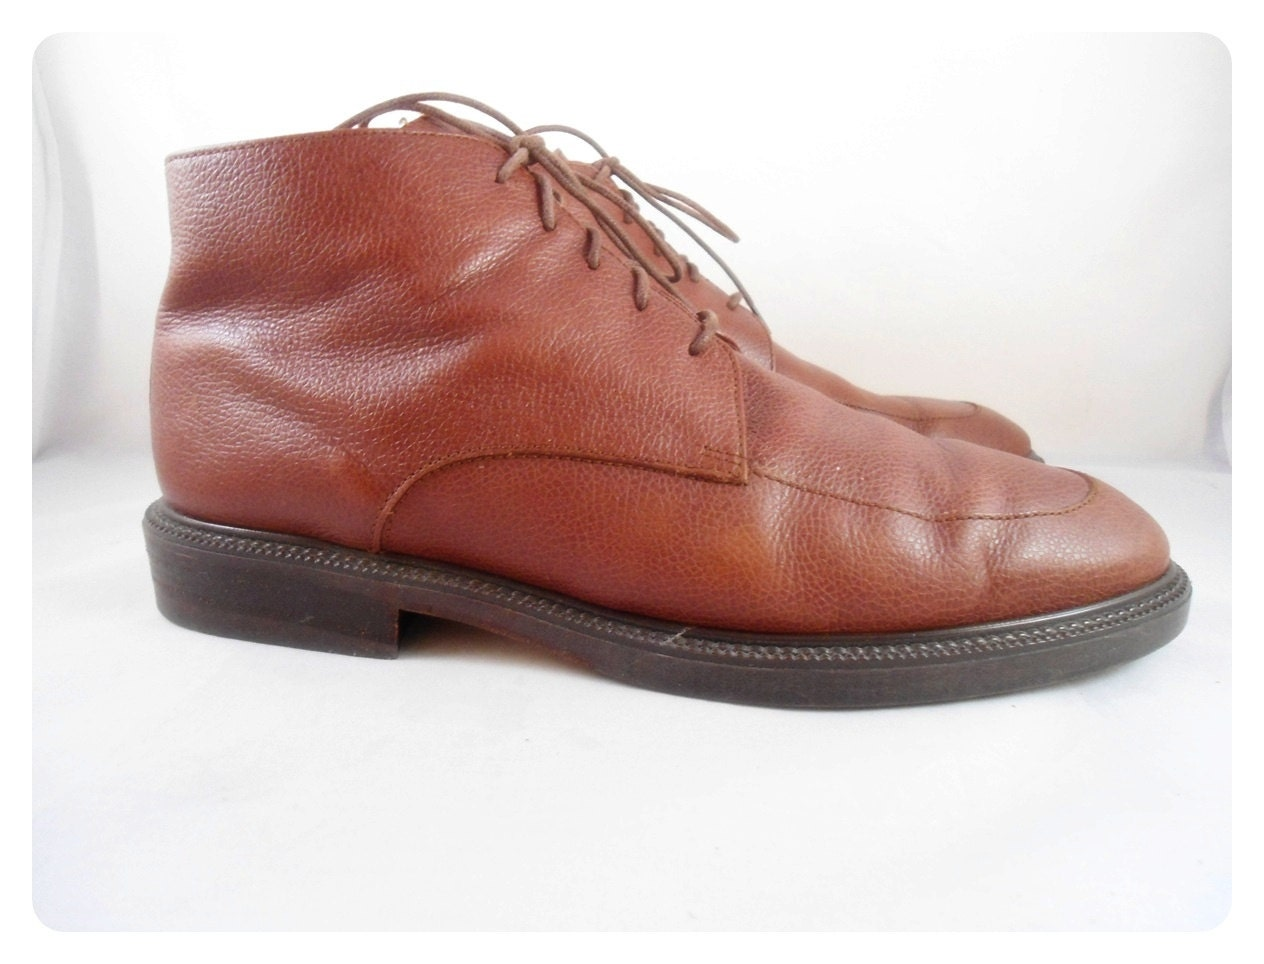 Vintage Mens EDDIE BAUER Ankle Boots Italian Brown Leather